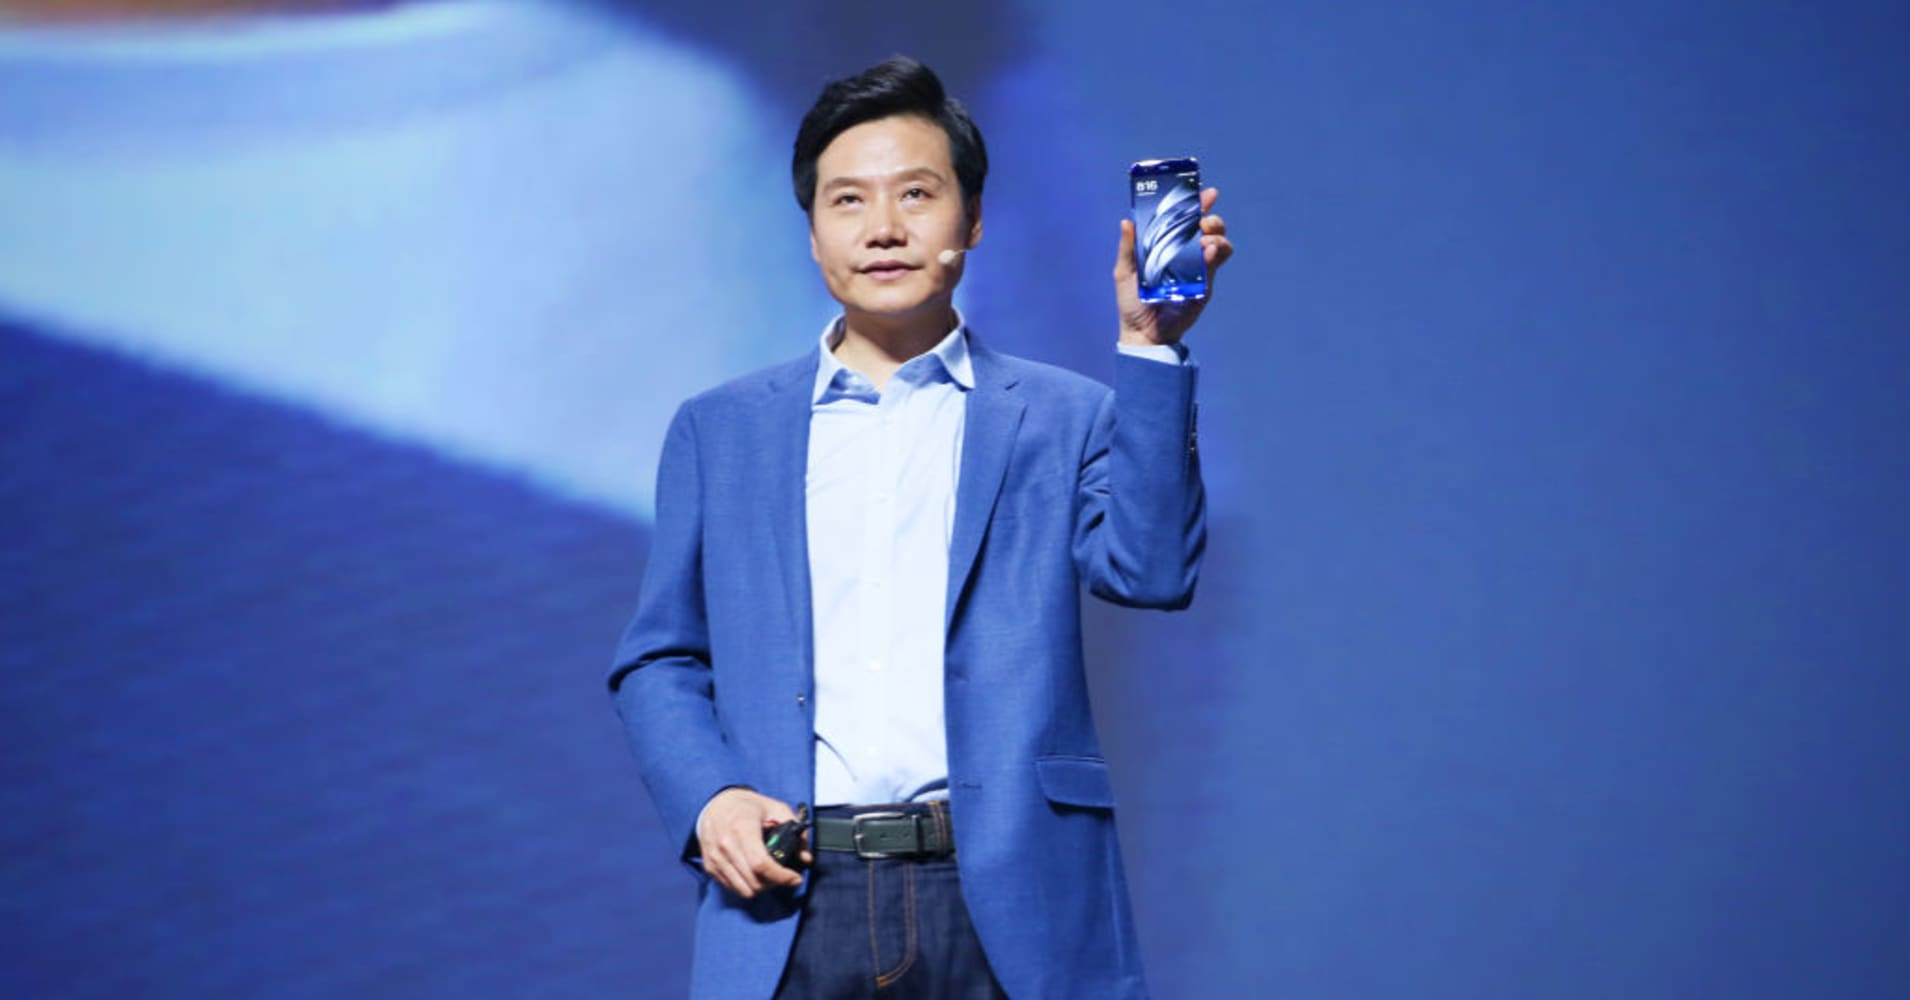 Xiaomi, once dubbed the 'Apple of China,' has lost 40% of its value since its IPO last year